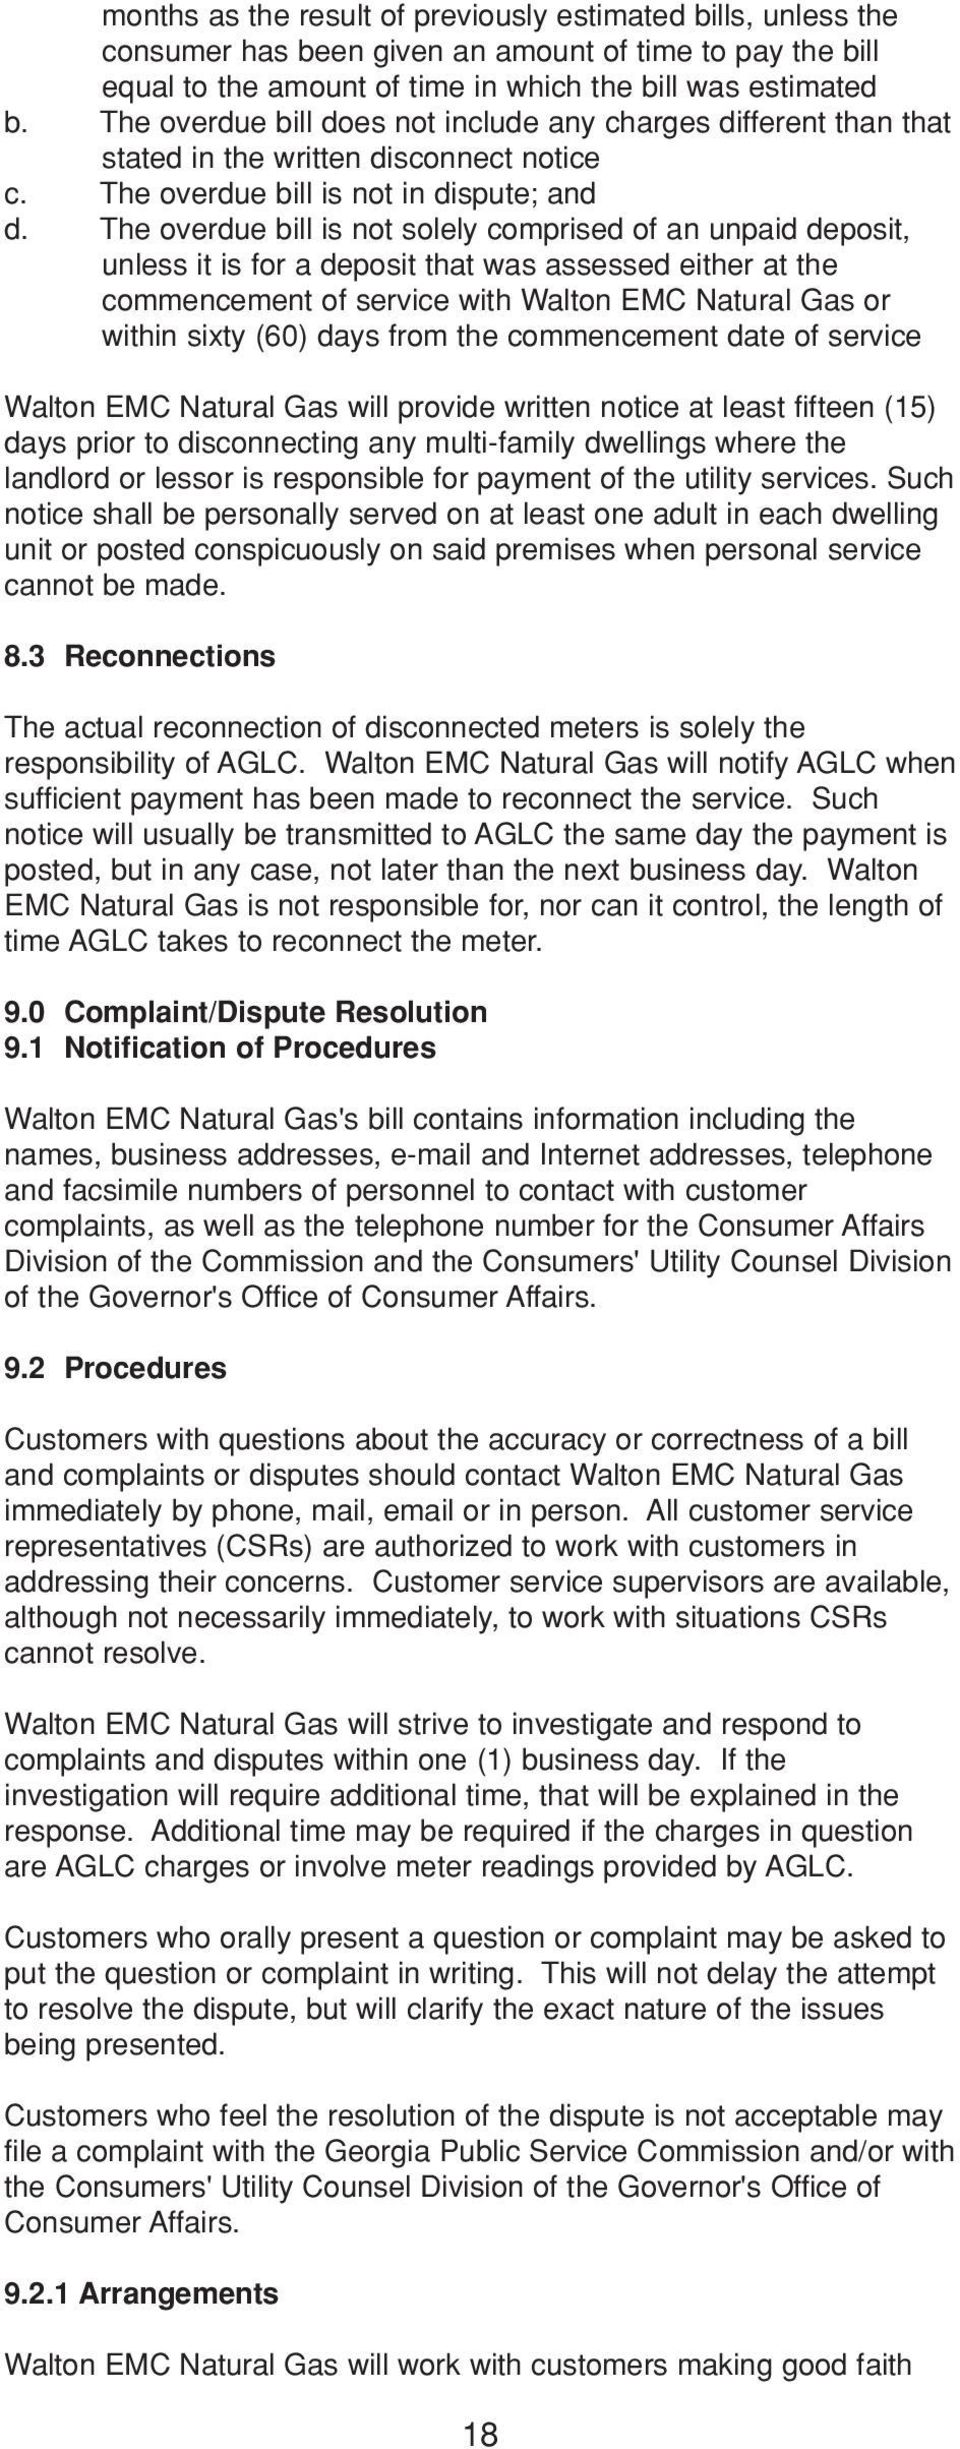 The overdue bill is not solely comprised of an unpaid deposit, unless it is for a deposit that was assessed either at the commencement of service with Walton EMC Natural Gas or within sixty (60) days